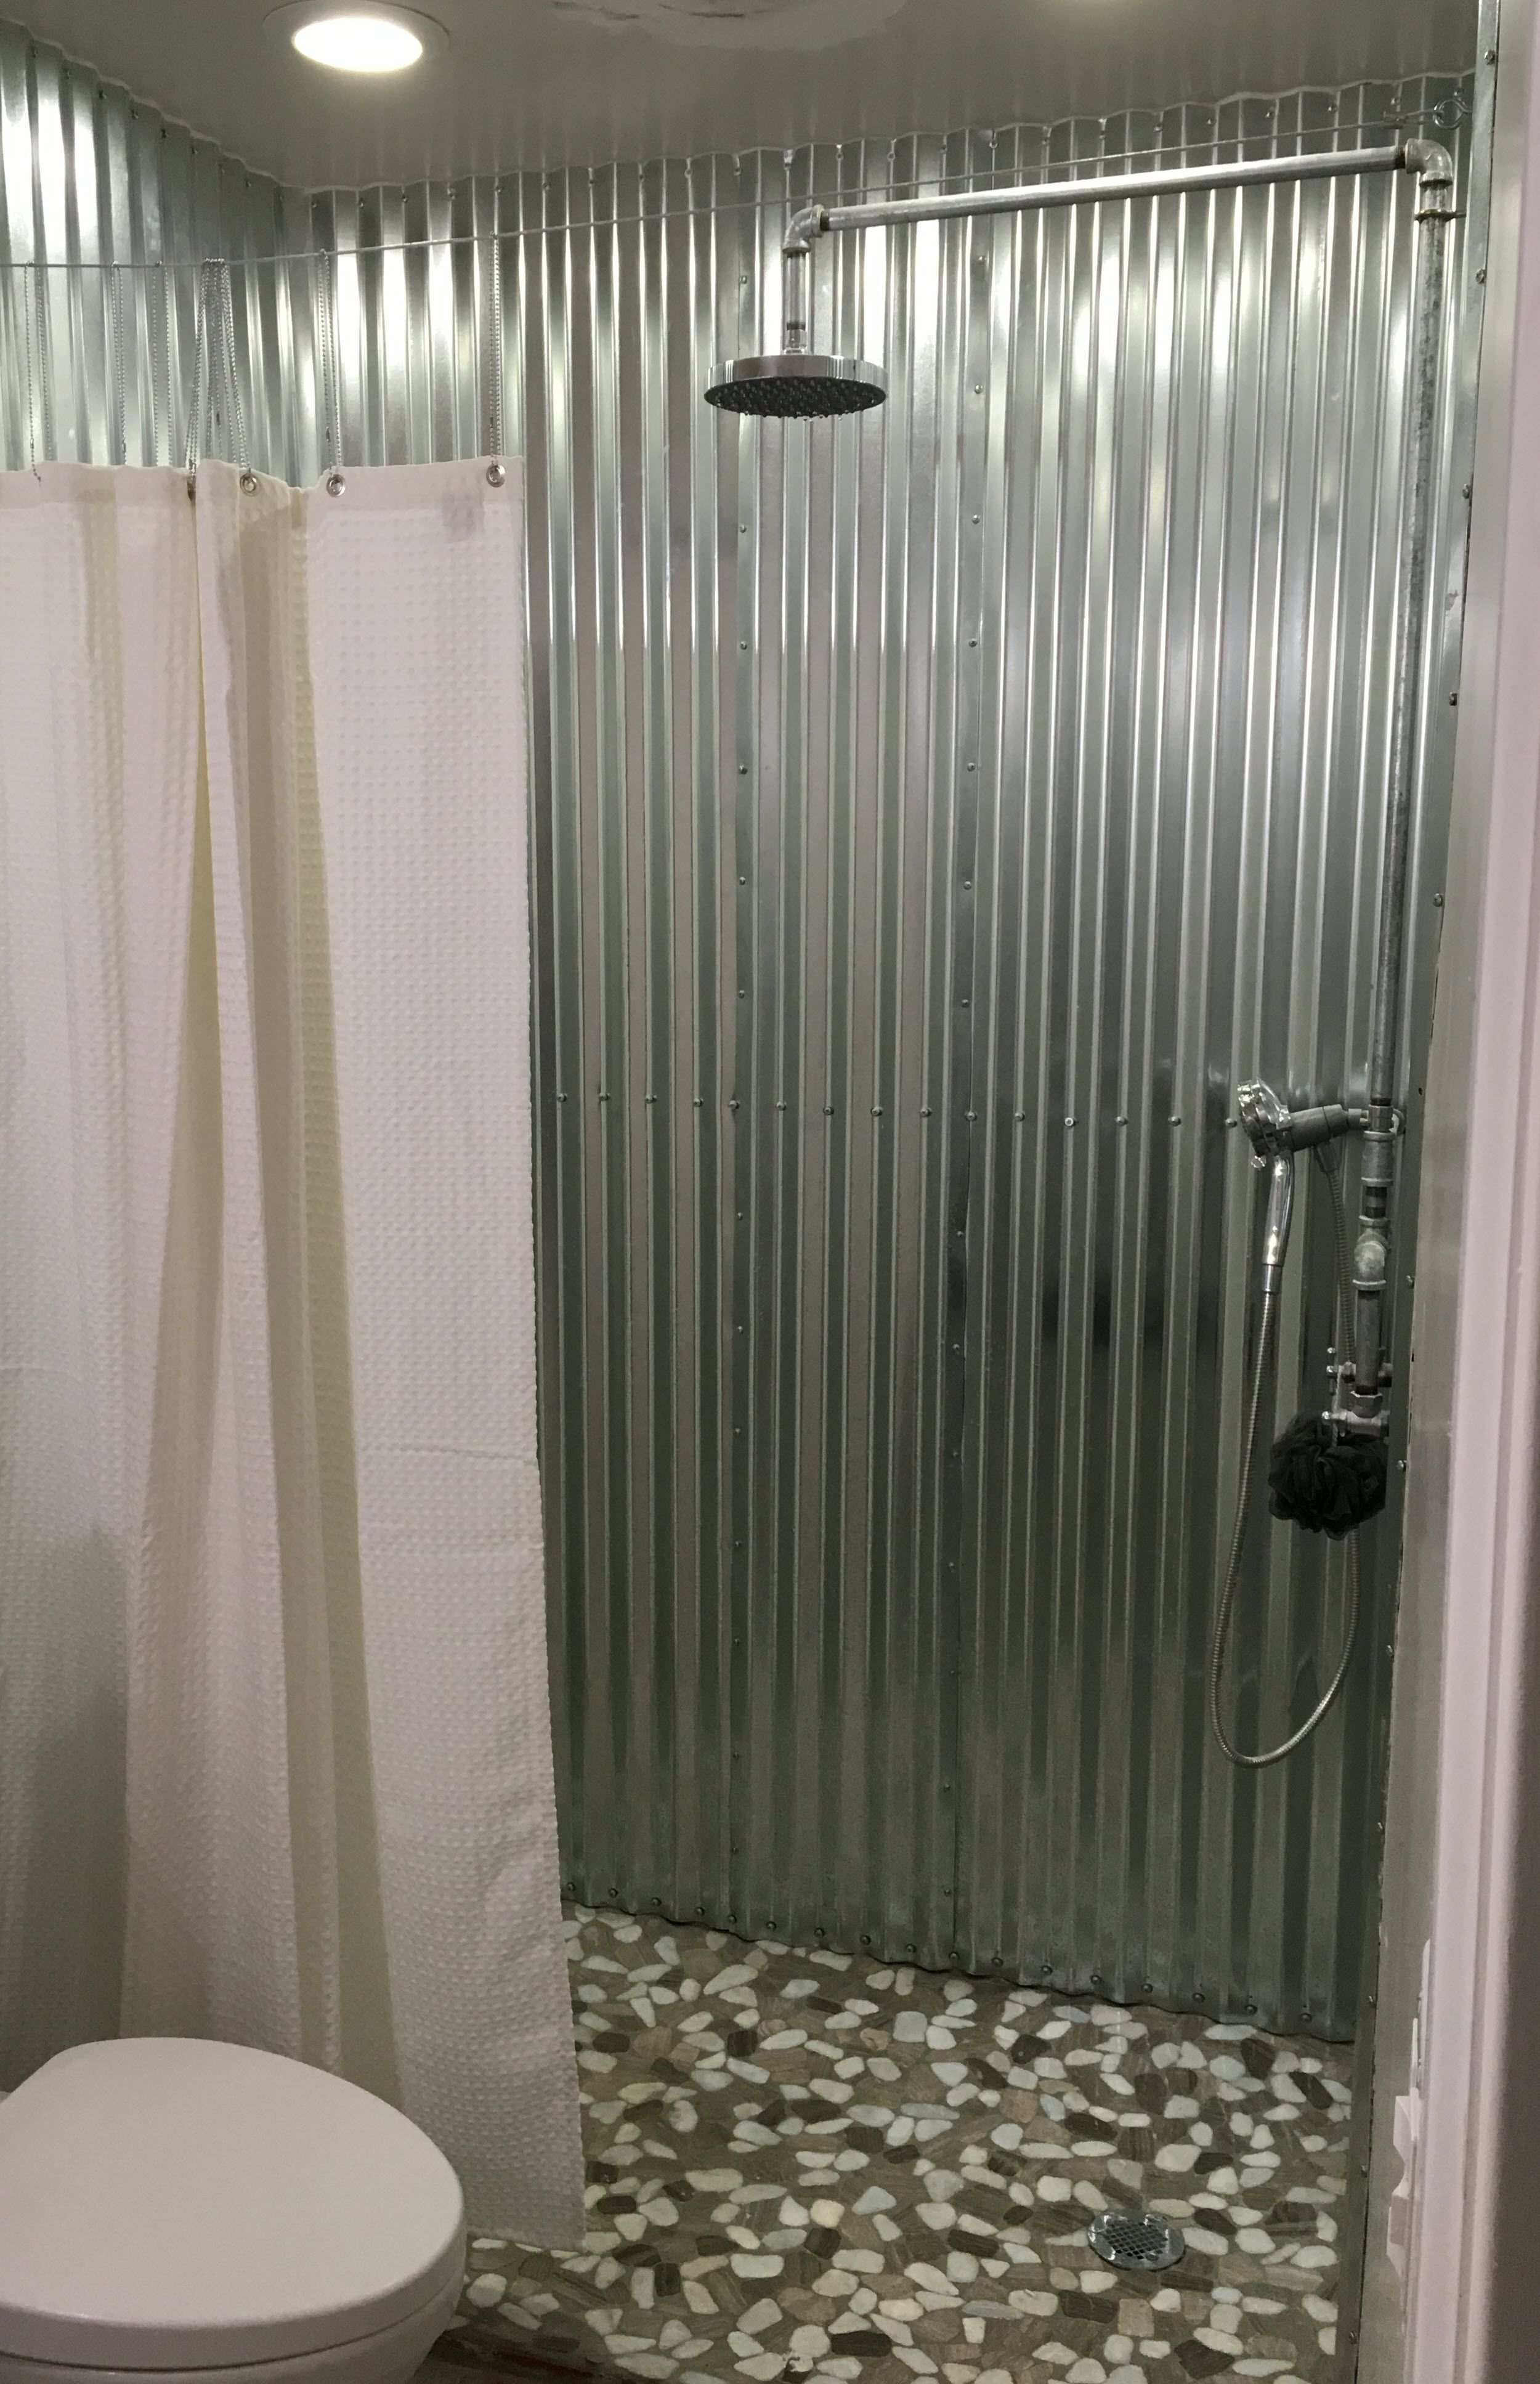 Modern Country Industrial Shower Built With Corrugated Metal Walls. Exposed